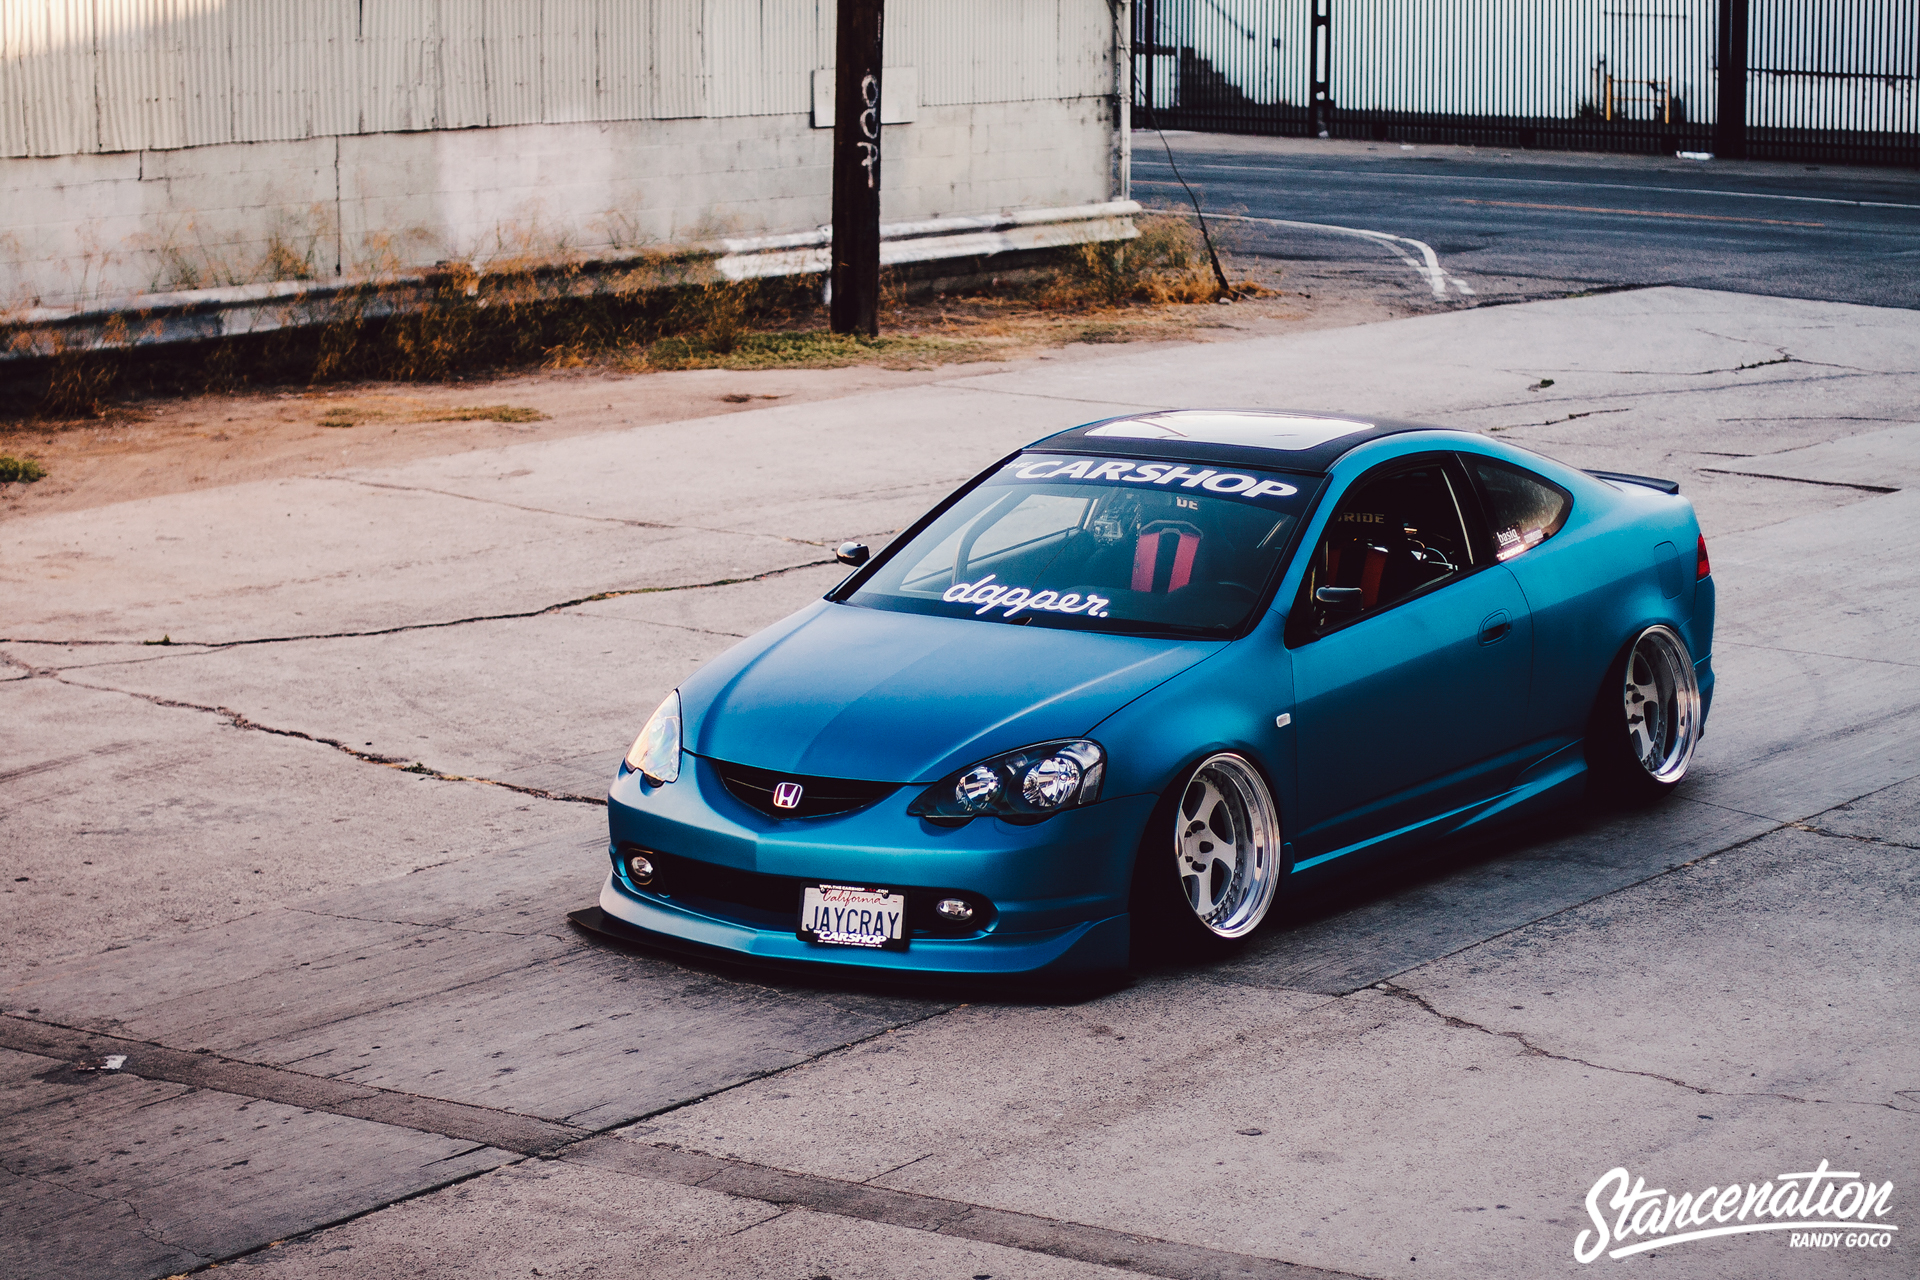 JAYCRAY Is The Name Jeralds Acura RSX StanceNation Form - 2006 acura rsx type s wheels